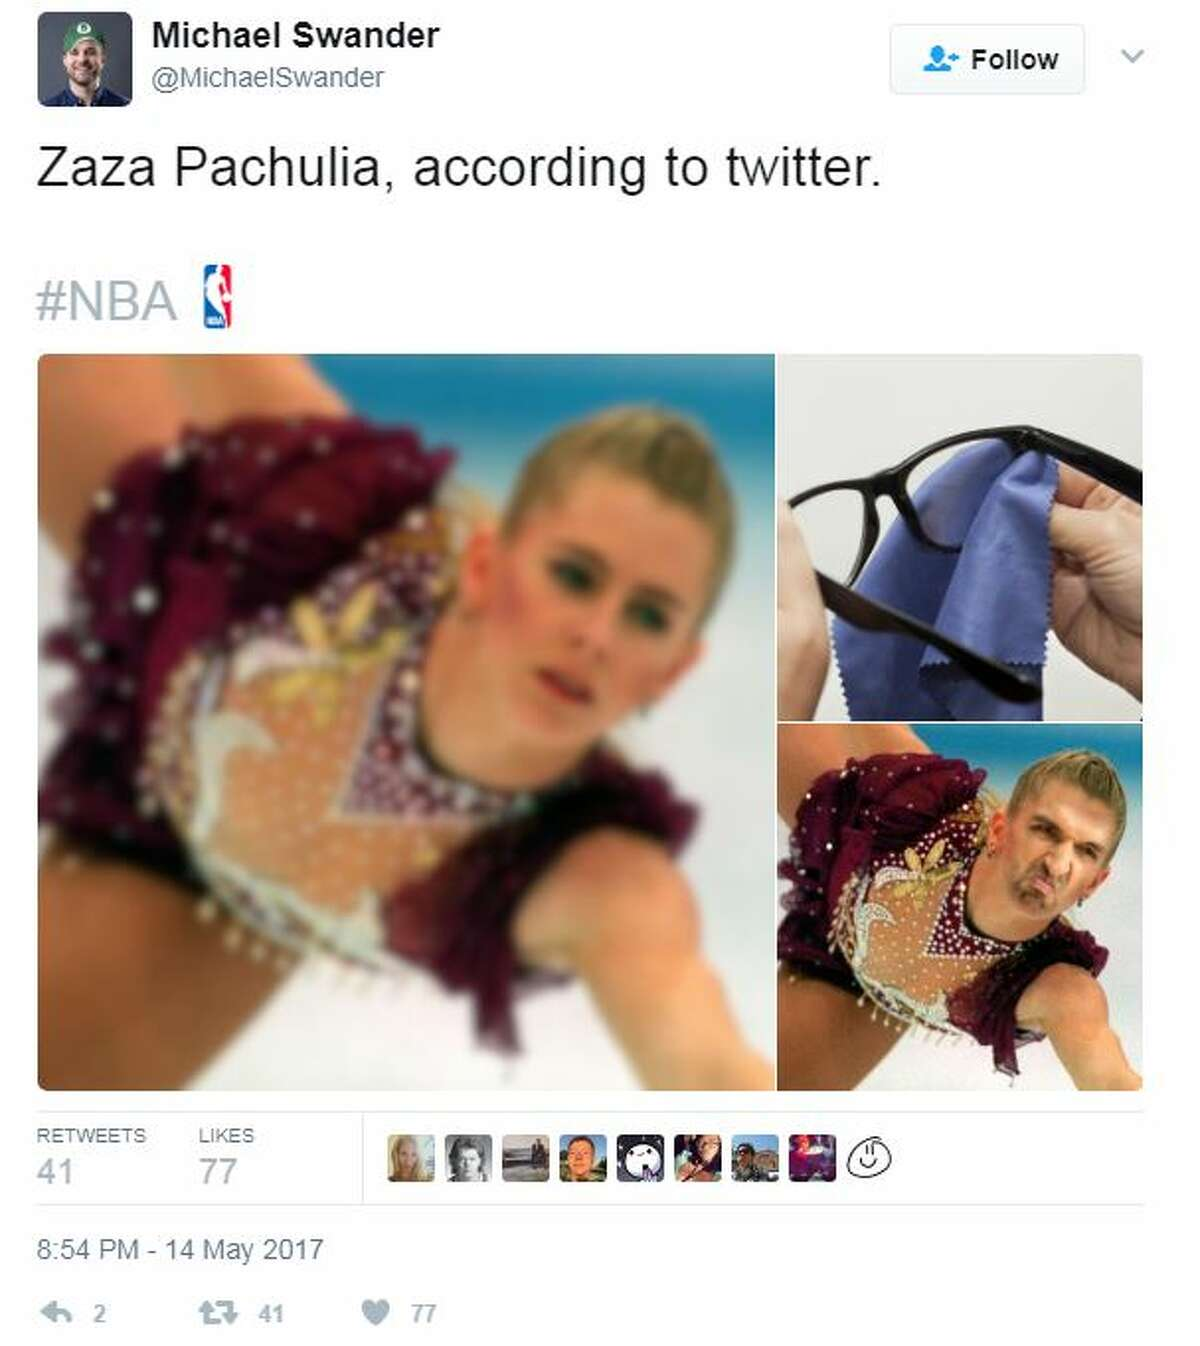 It did not take long for Twitter to take issue with Zaza Pachulia after a seemingly intentional undercut of Kawhi Leonard in Game 1 by obstructing his landing on a shot that led to Leonard rolling his left ankle and forcing him from the game.